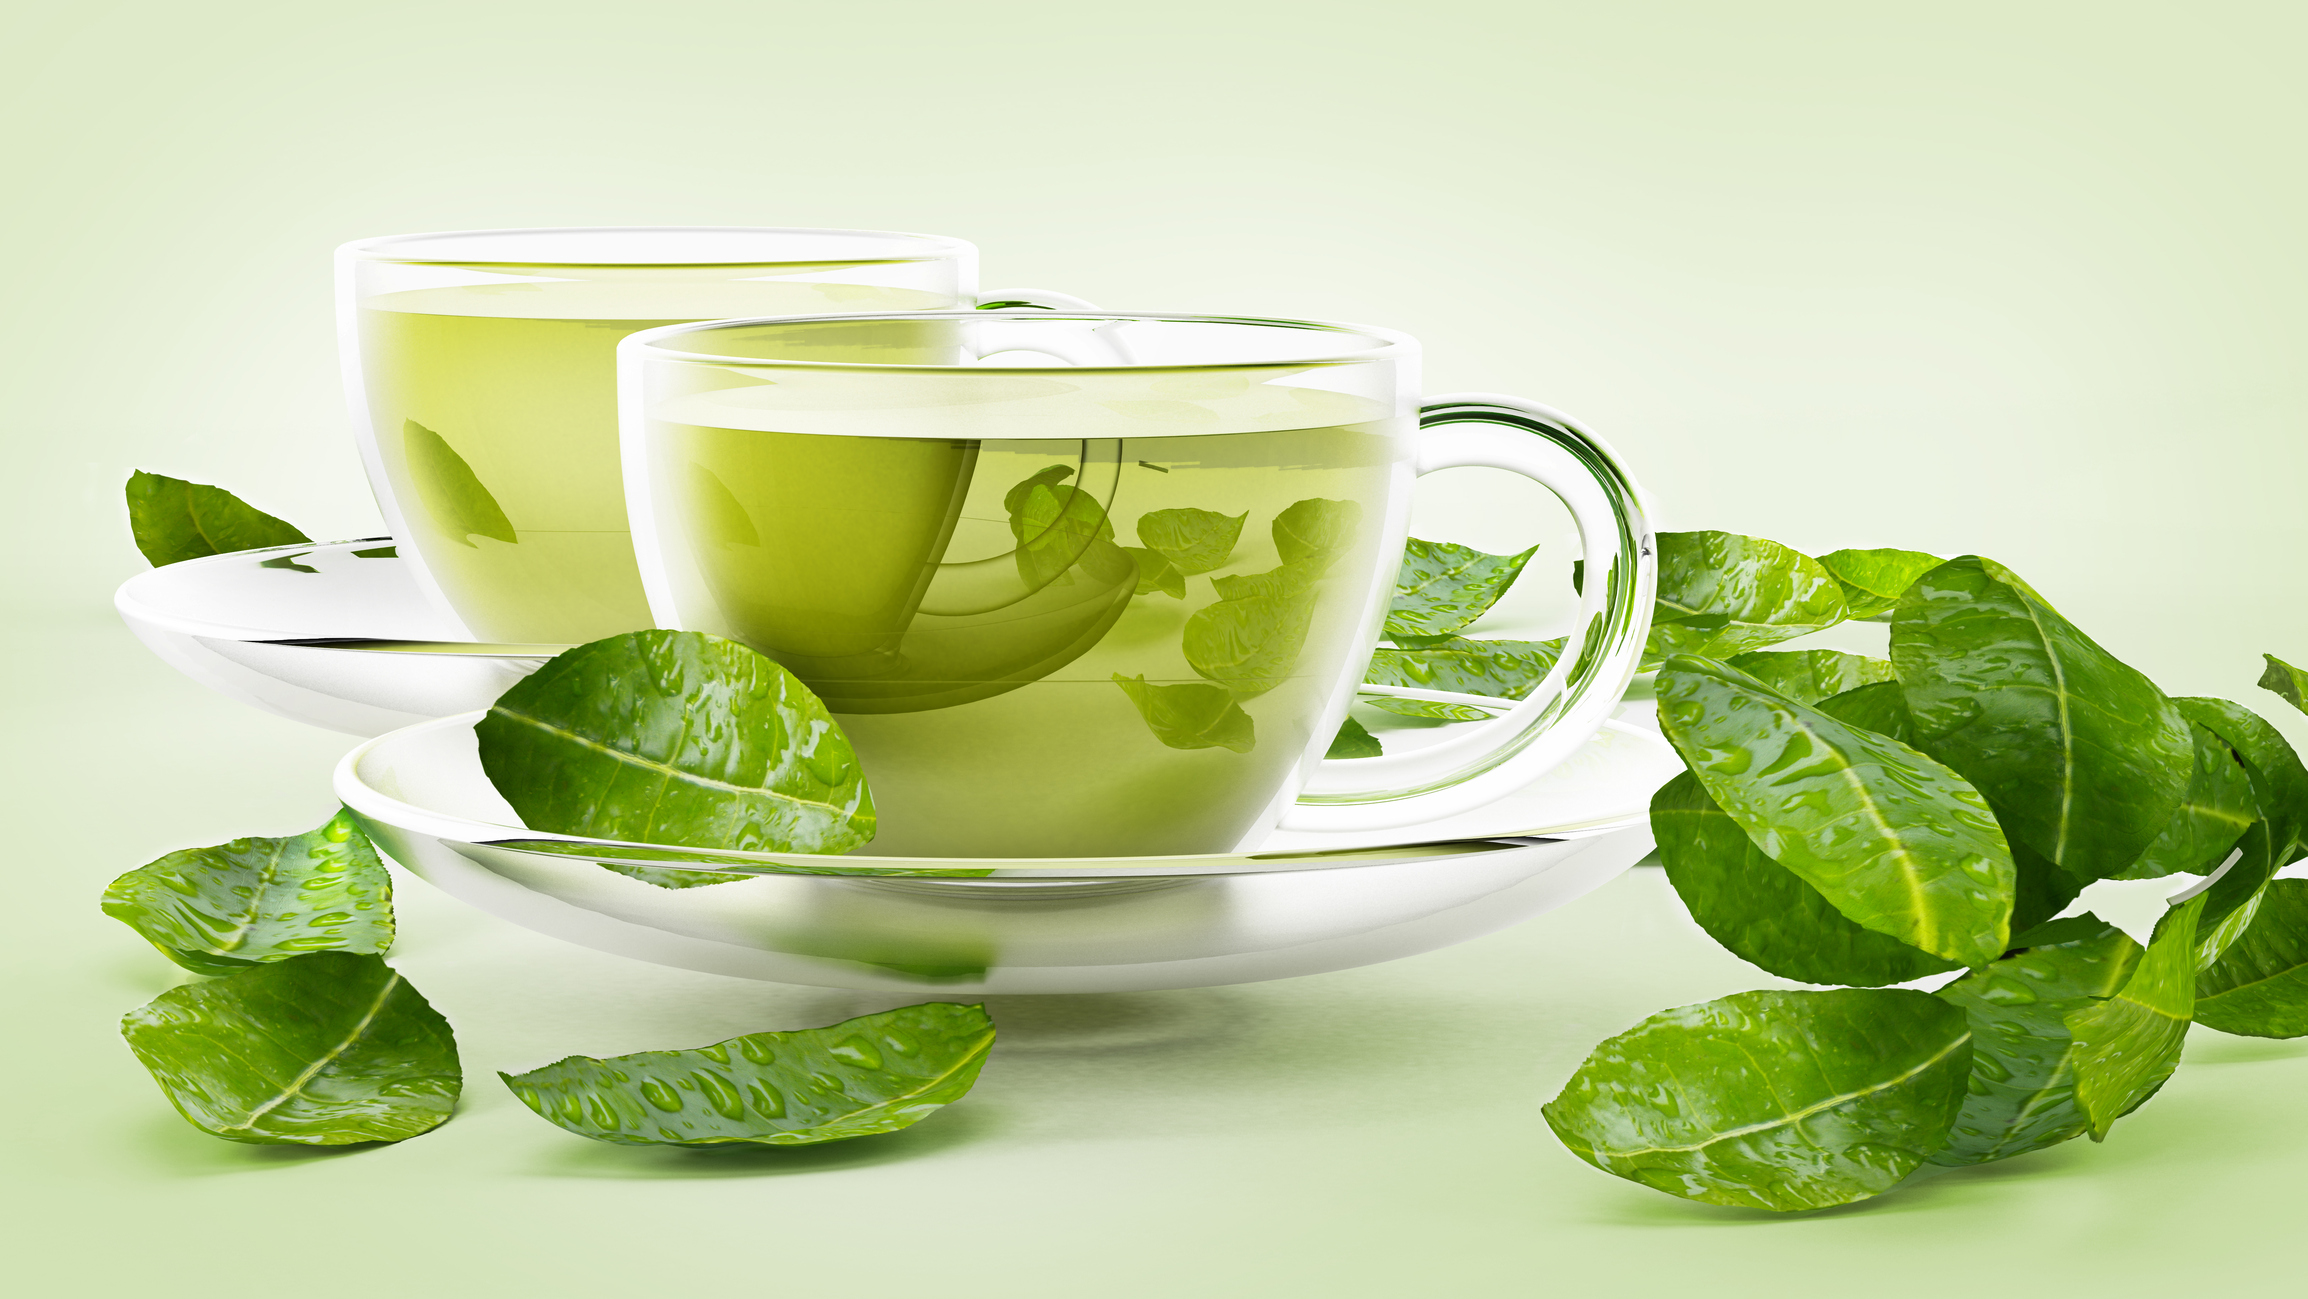 Glass cups with green tea and tea leaves isolated on white